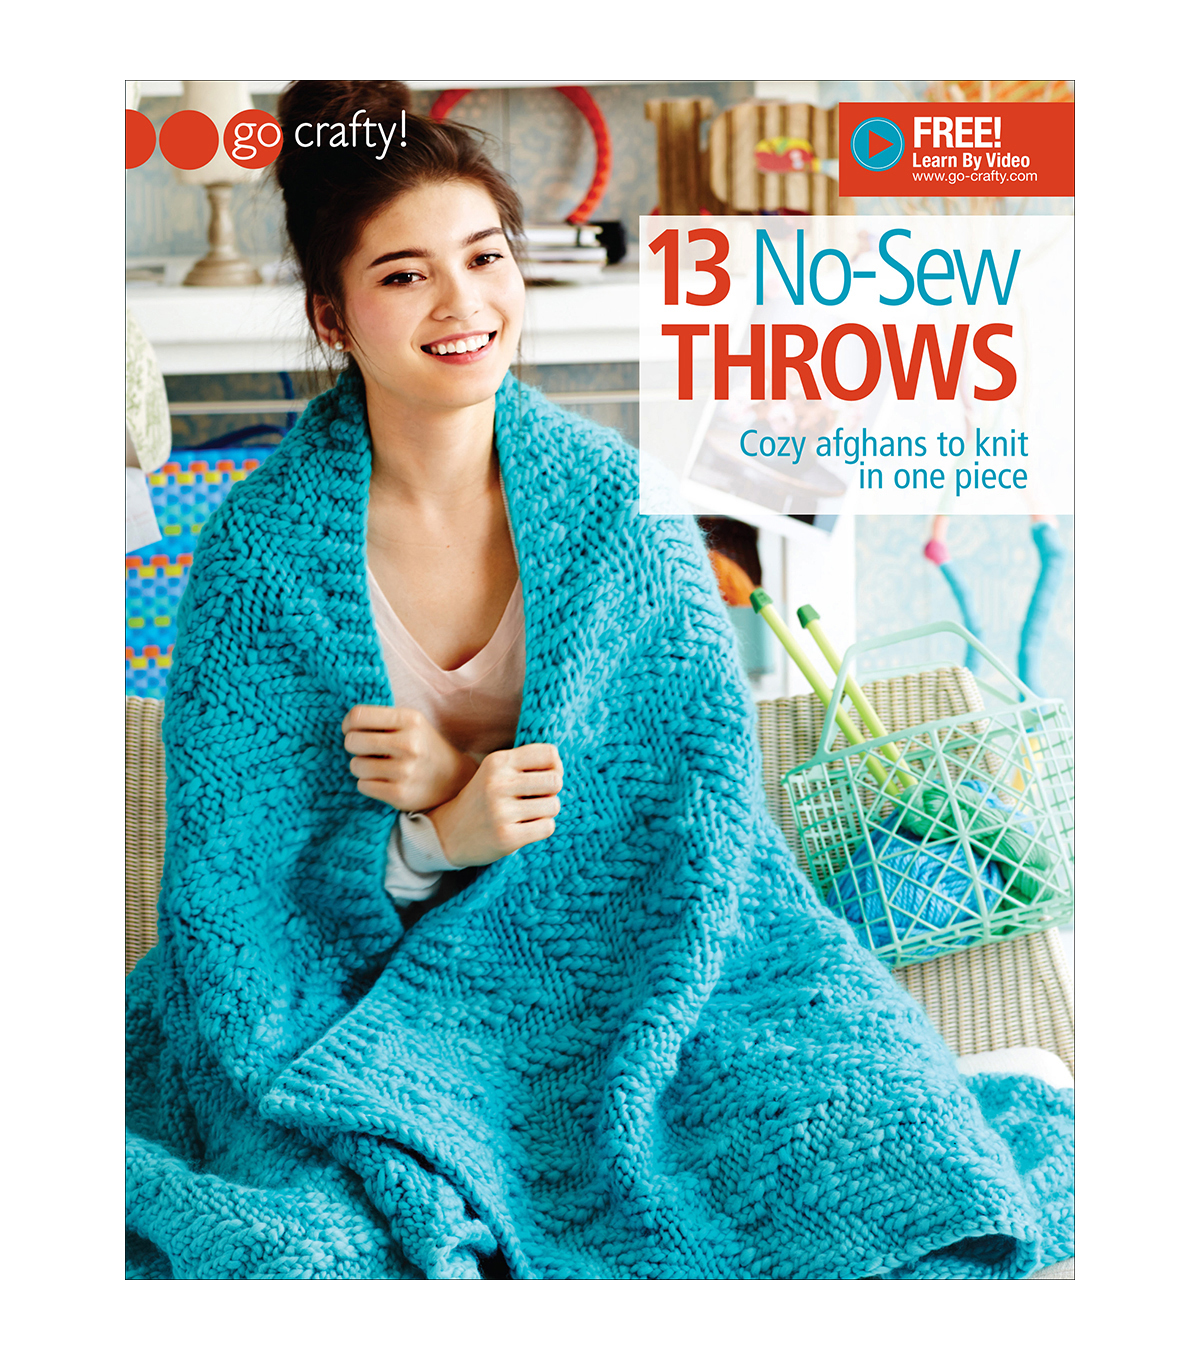 13 No-Sew Throws Knitting Book